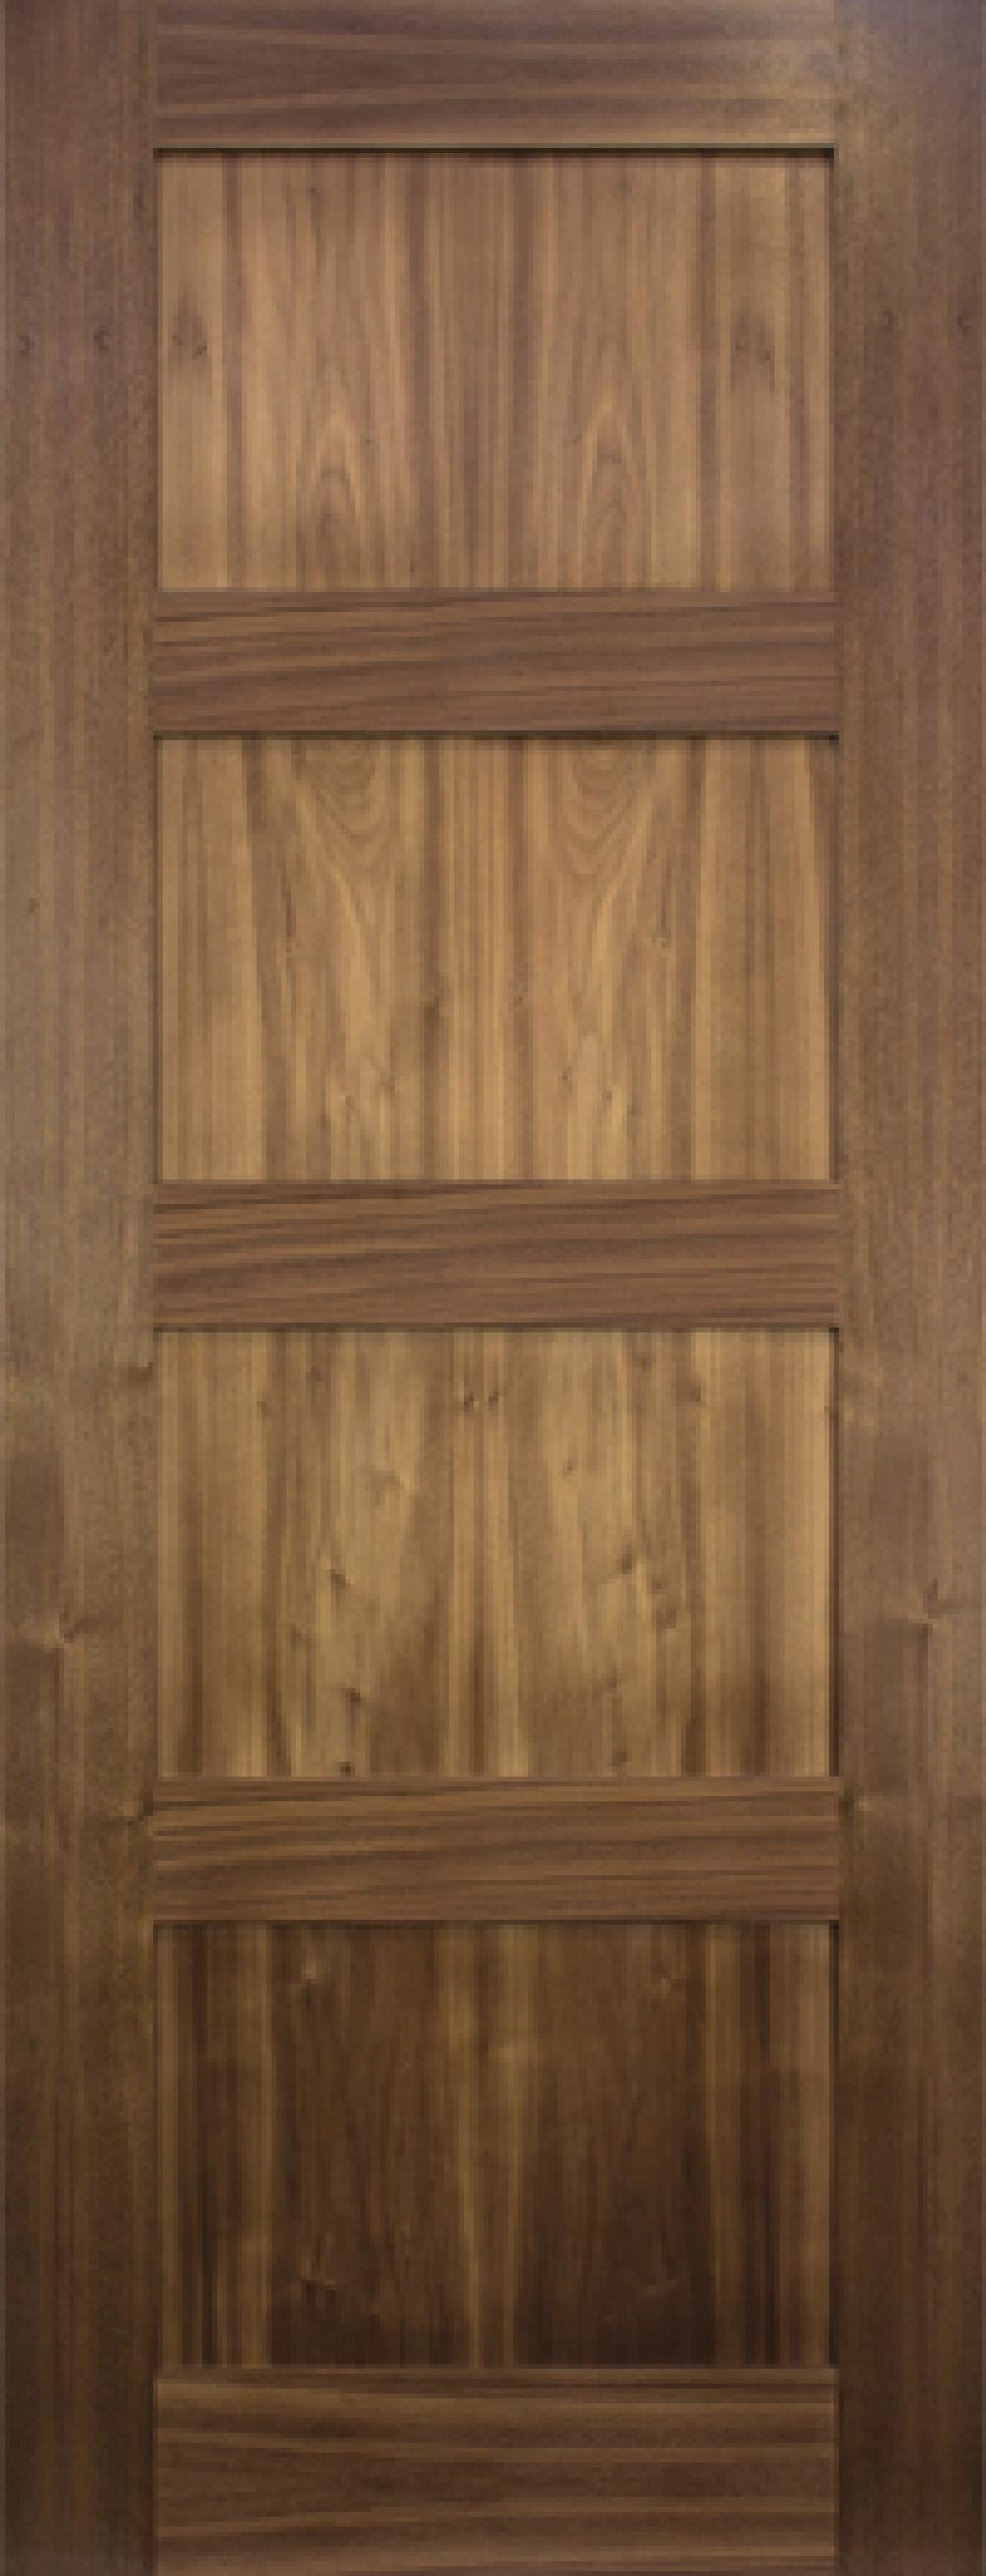 Coventry Walnut - PREFINISHED:  Image